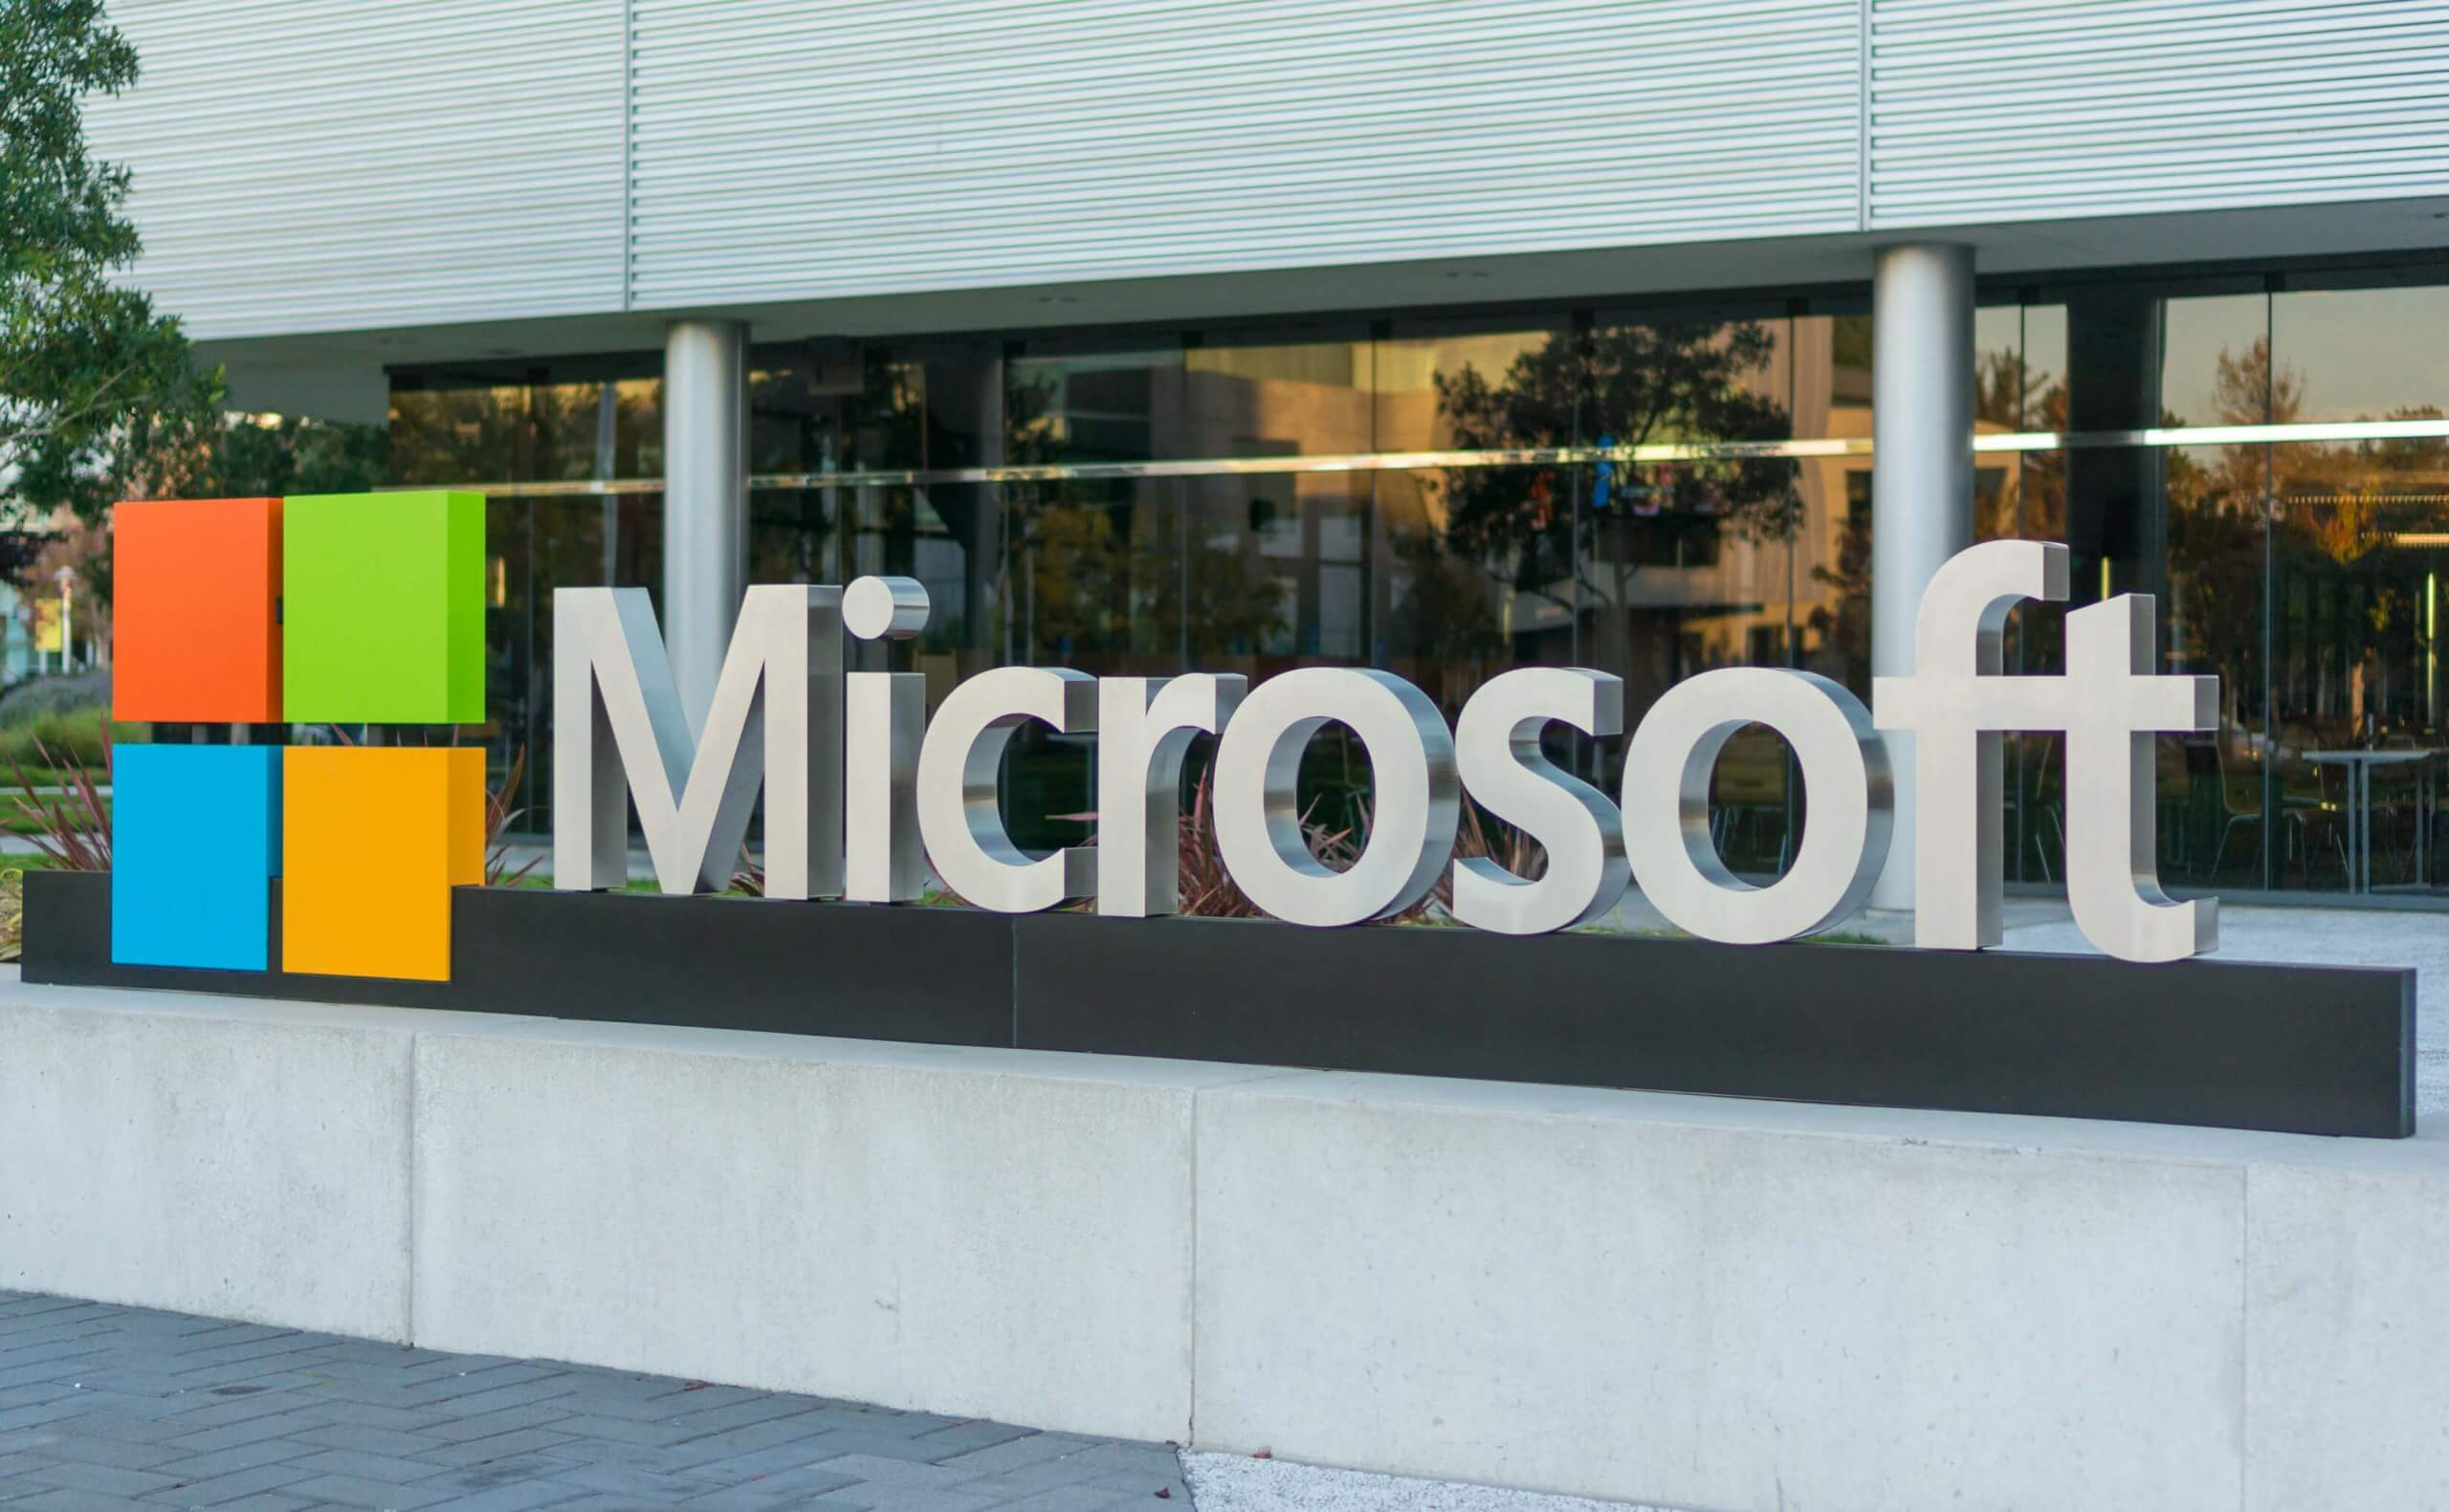 GDPR, USA? Microsoft says US should match the EU's digital privacy law